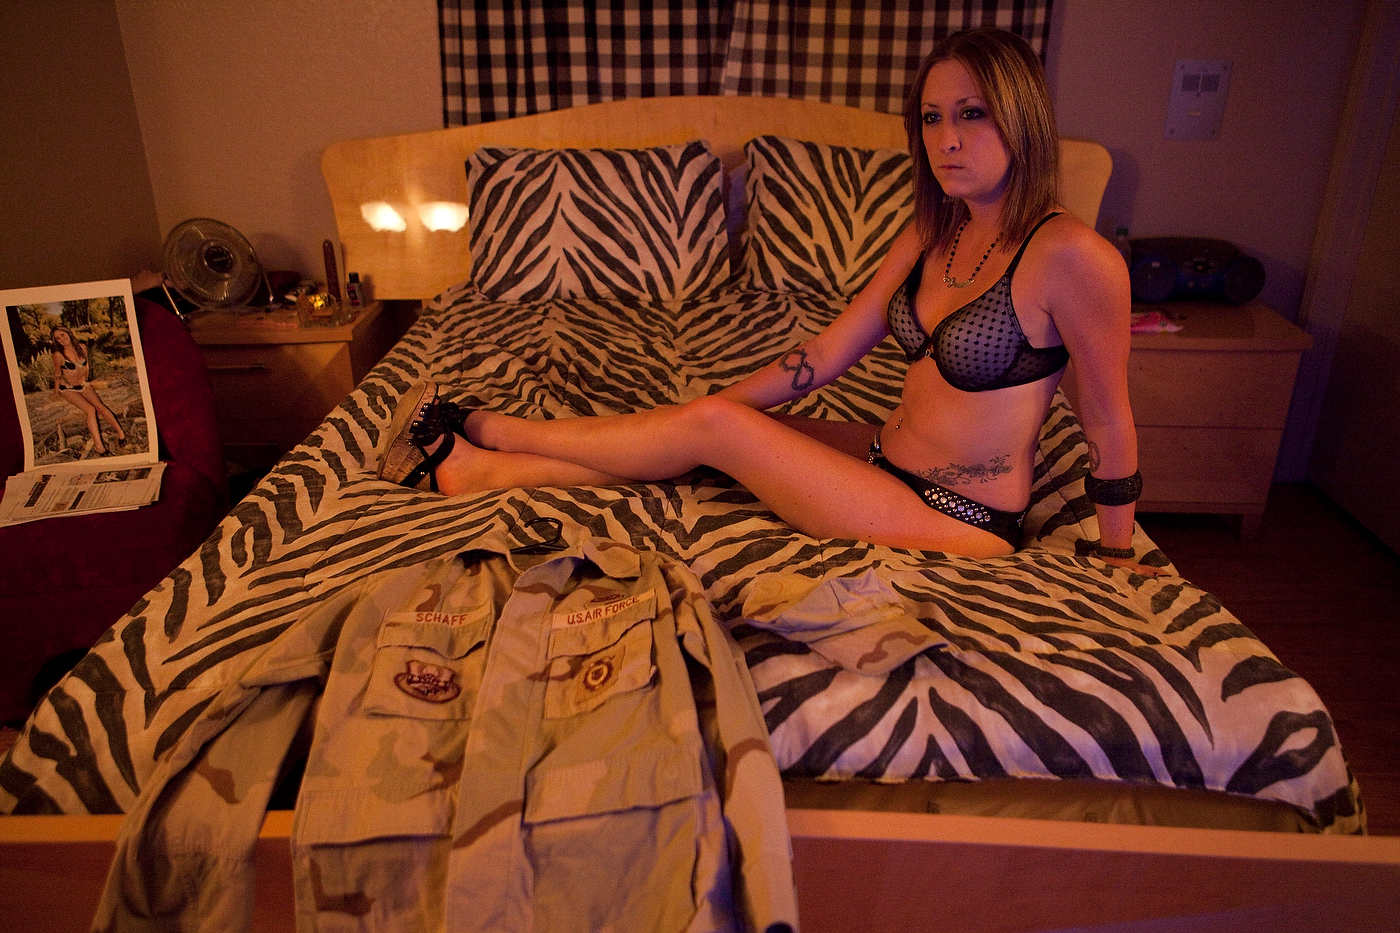 Iraq veteran Air Force Amber waits for a client at the Love Ranch.